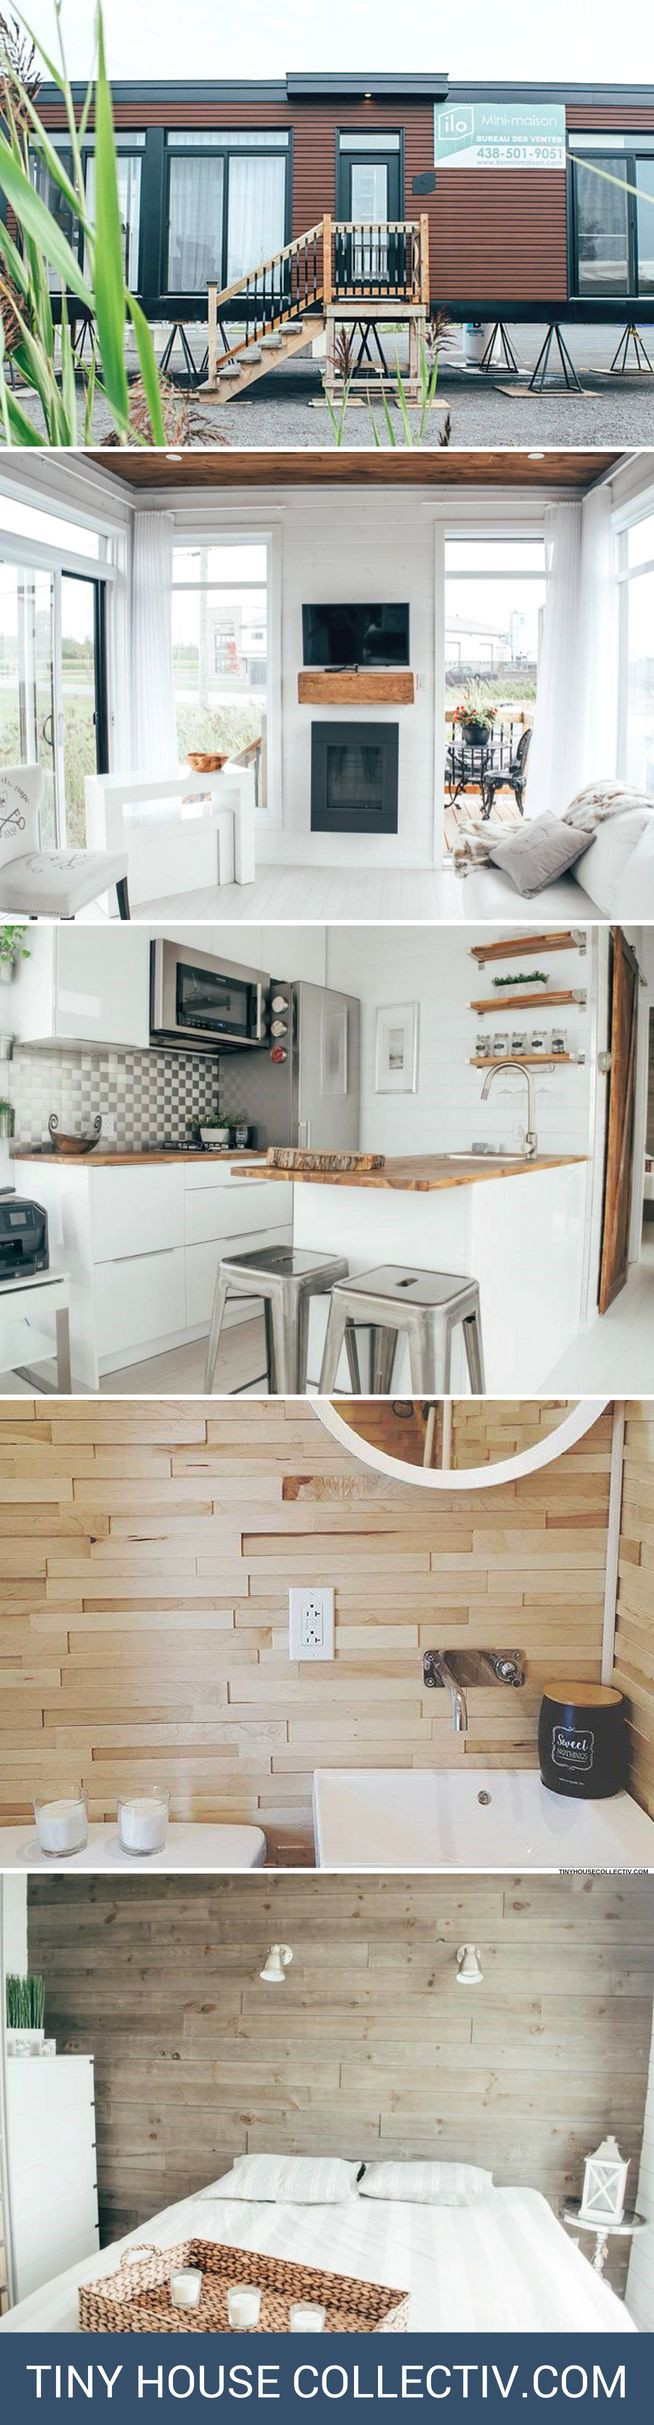 hardwood flooring whitby of 1152 best tiny houses images on pinterest small houses tiny within the billy from ilo mini maison